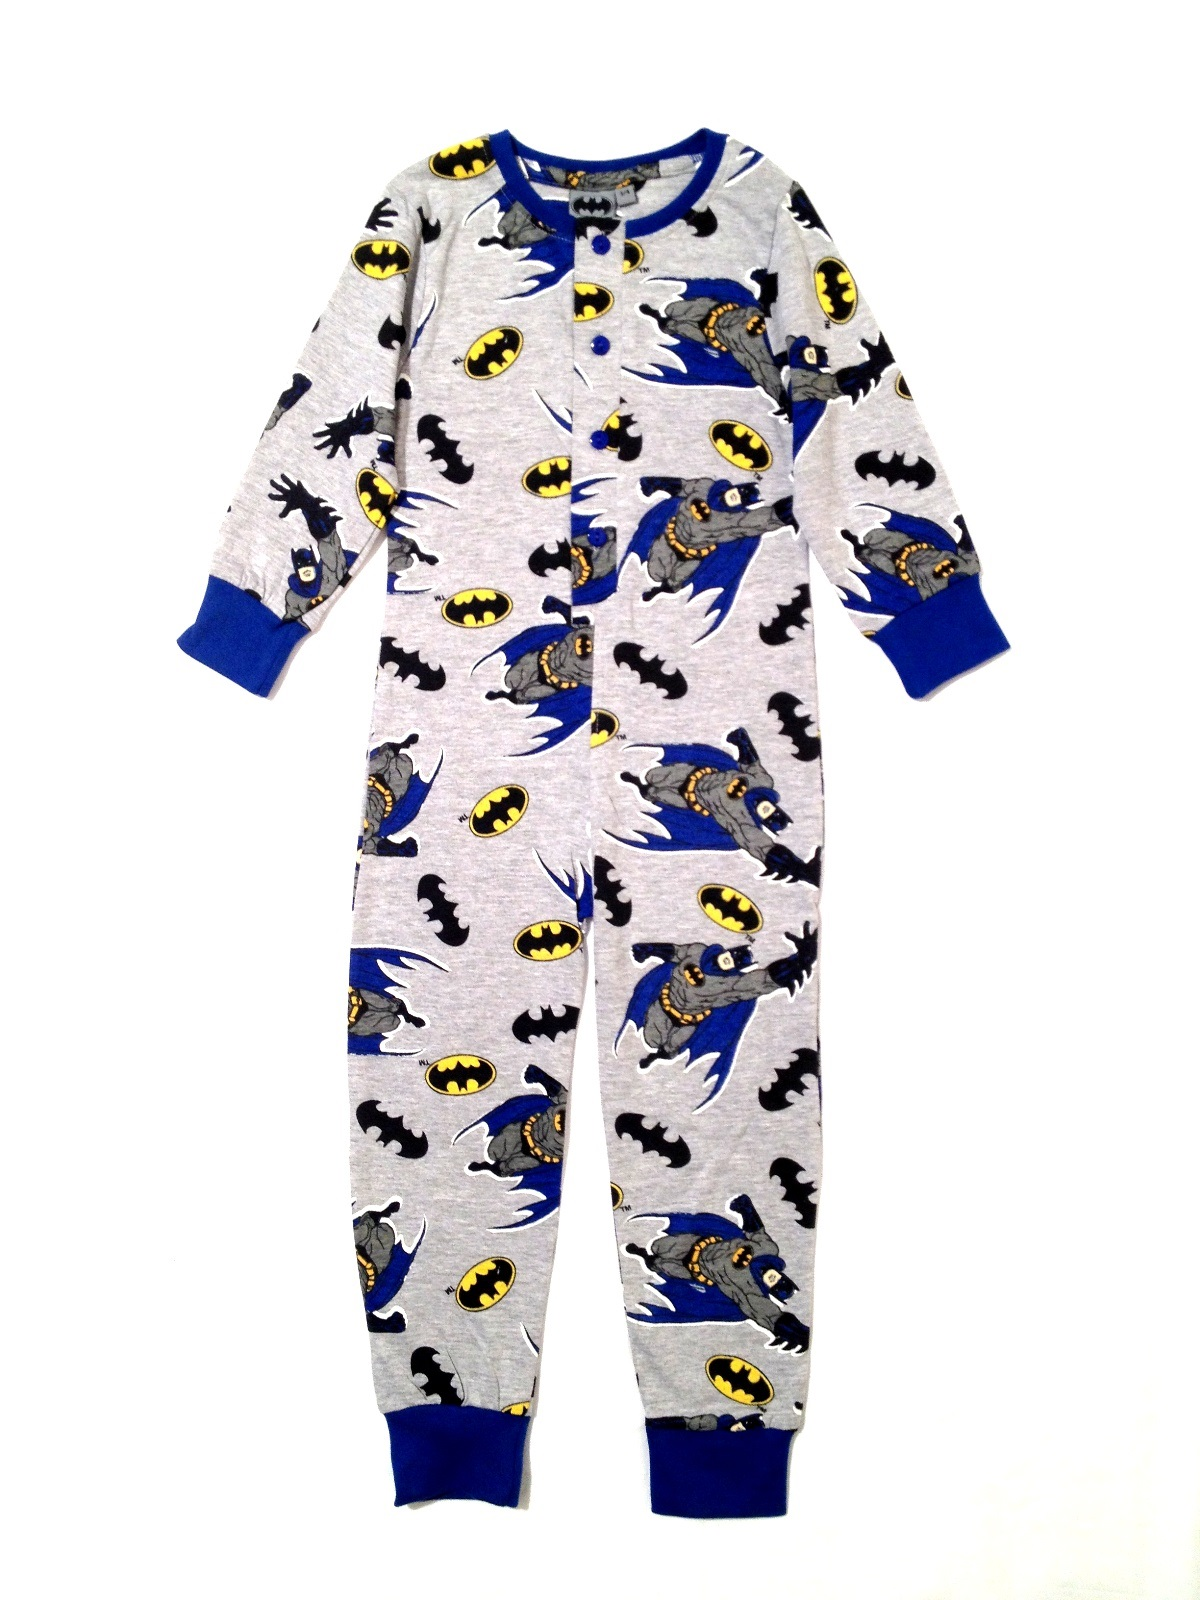 Snugglebum – the happy ending to the childrens sleepwear story Inspired by beautiful designs from Europe and unlike anything available in Australia, Snugglebum children's sleepwear is stylish, comfortable and made with luxurious, super soft % cotton fabrics.